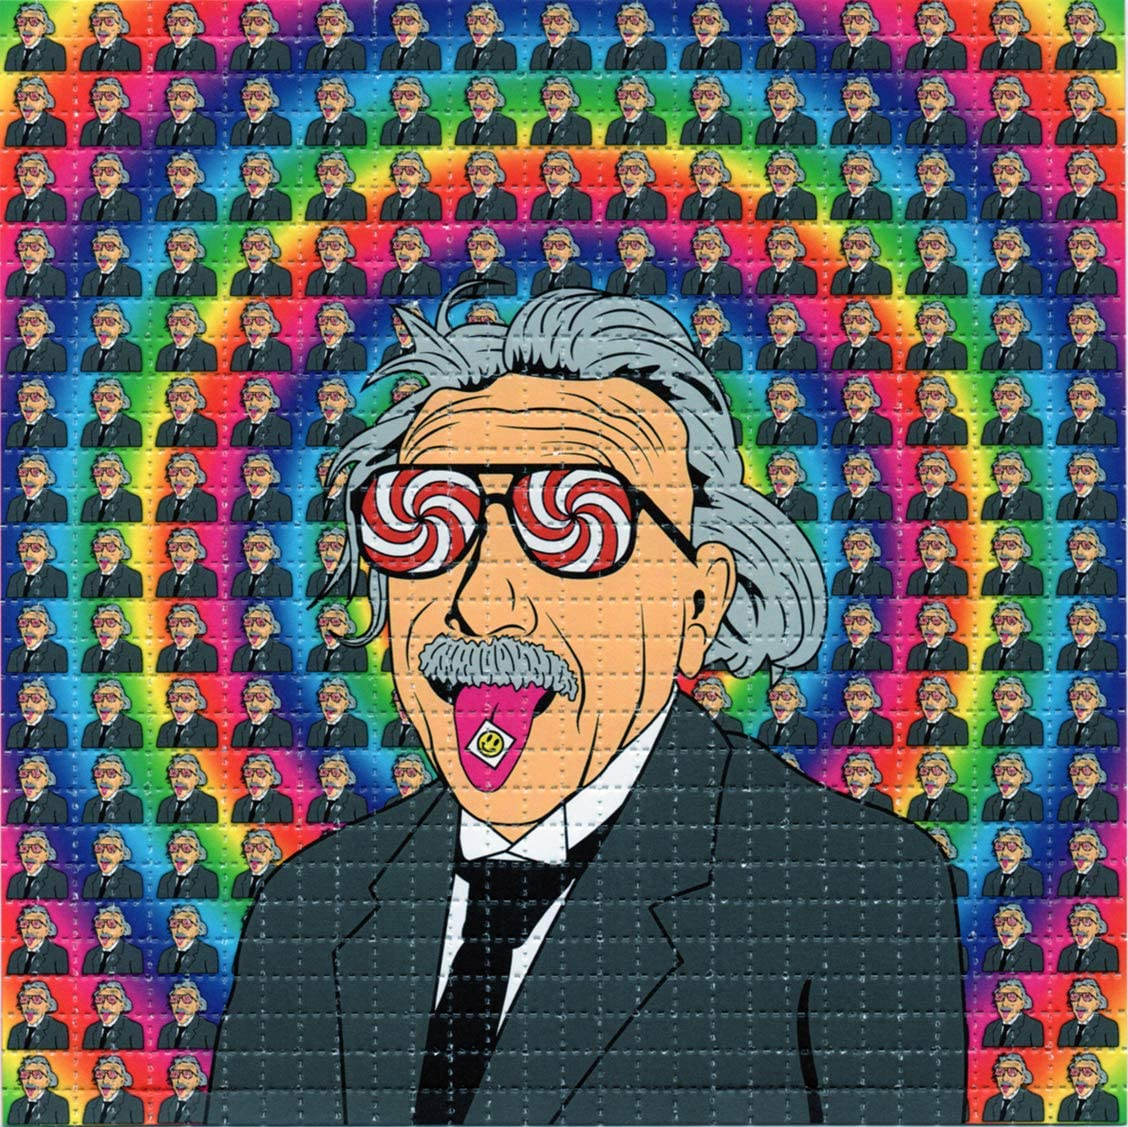 Depiction of sheet of LSD with image of Albert Hofmann with LSD on his tongue